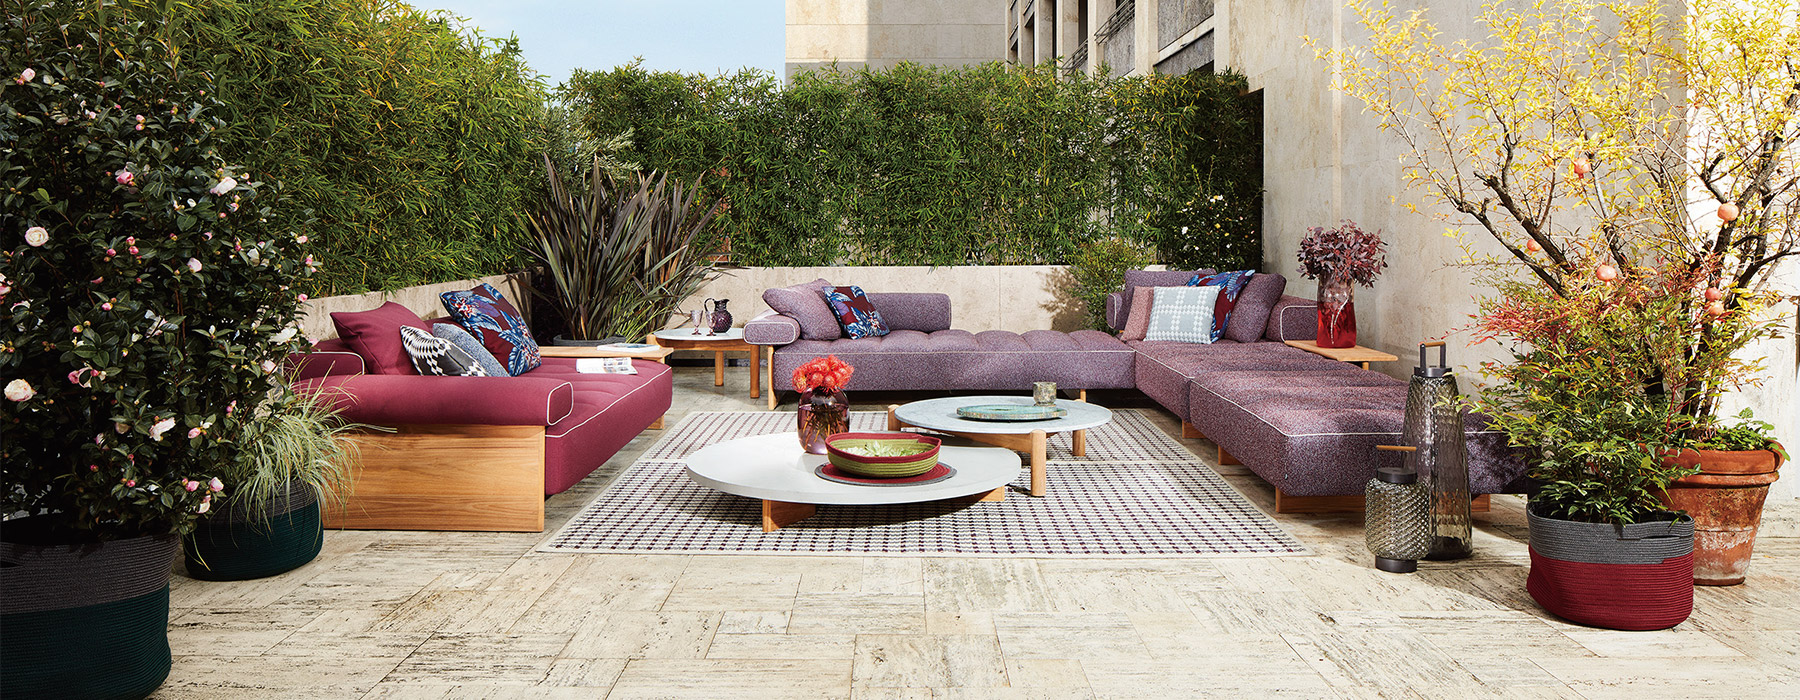 photo credits : DePasquale + Maffini, Sail Out sofa, low table and ottoman designed by Rodolfo Dordoni, Table a Plateau Interchangeable Outdoor designed by Charlotte Perriand